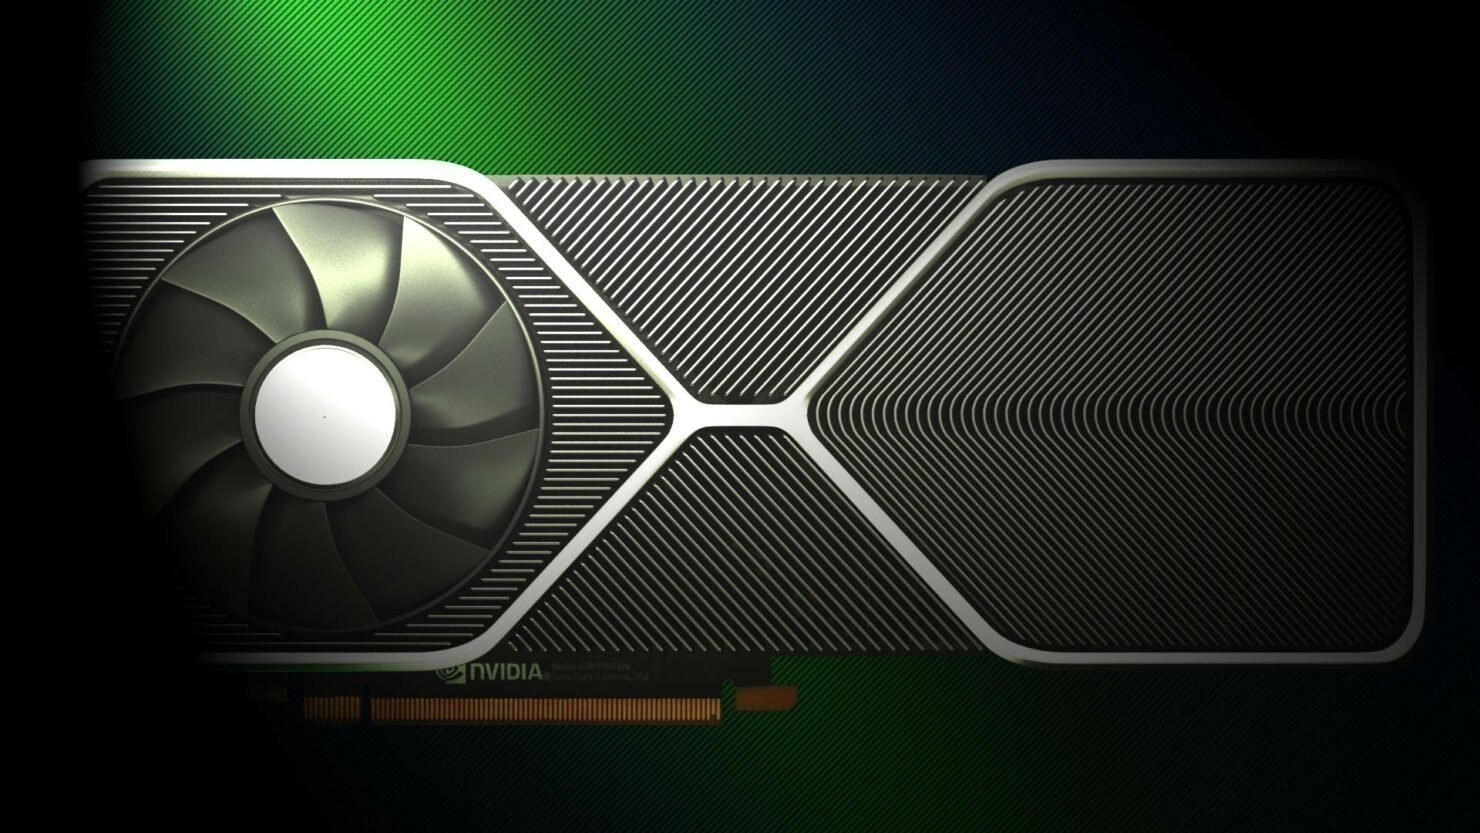 Nvidia Geforce Rtx 3000 Series Announcement Rumored For September 9 Tweaktown